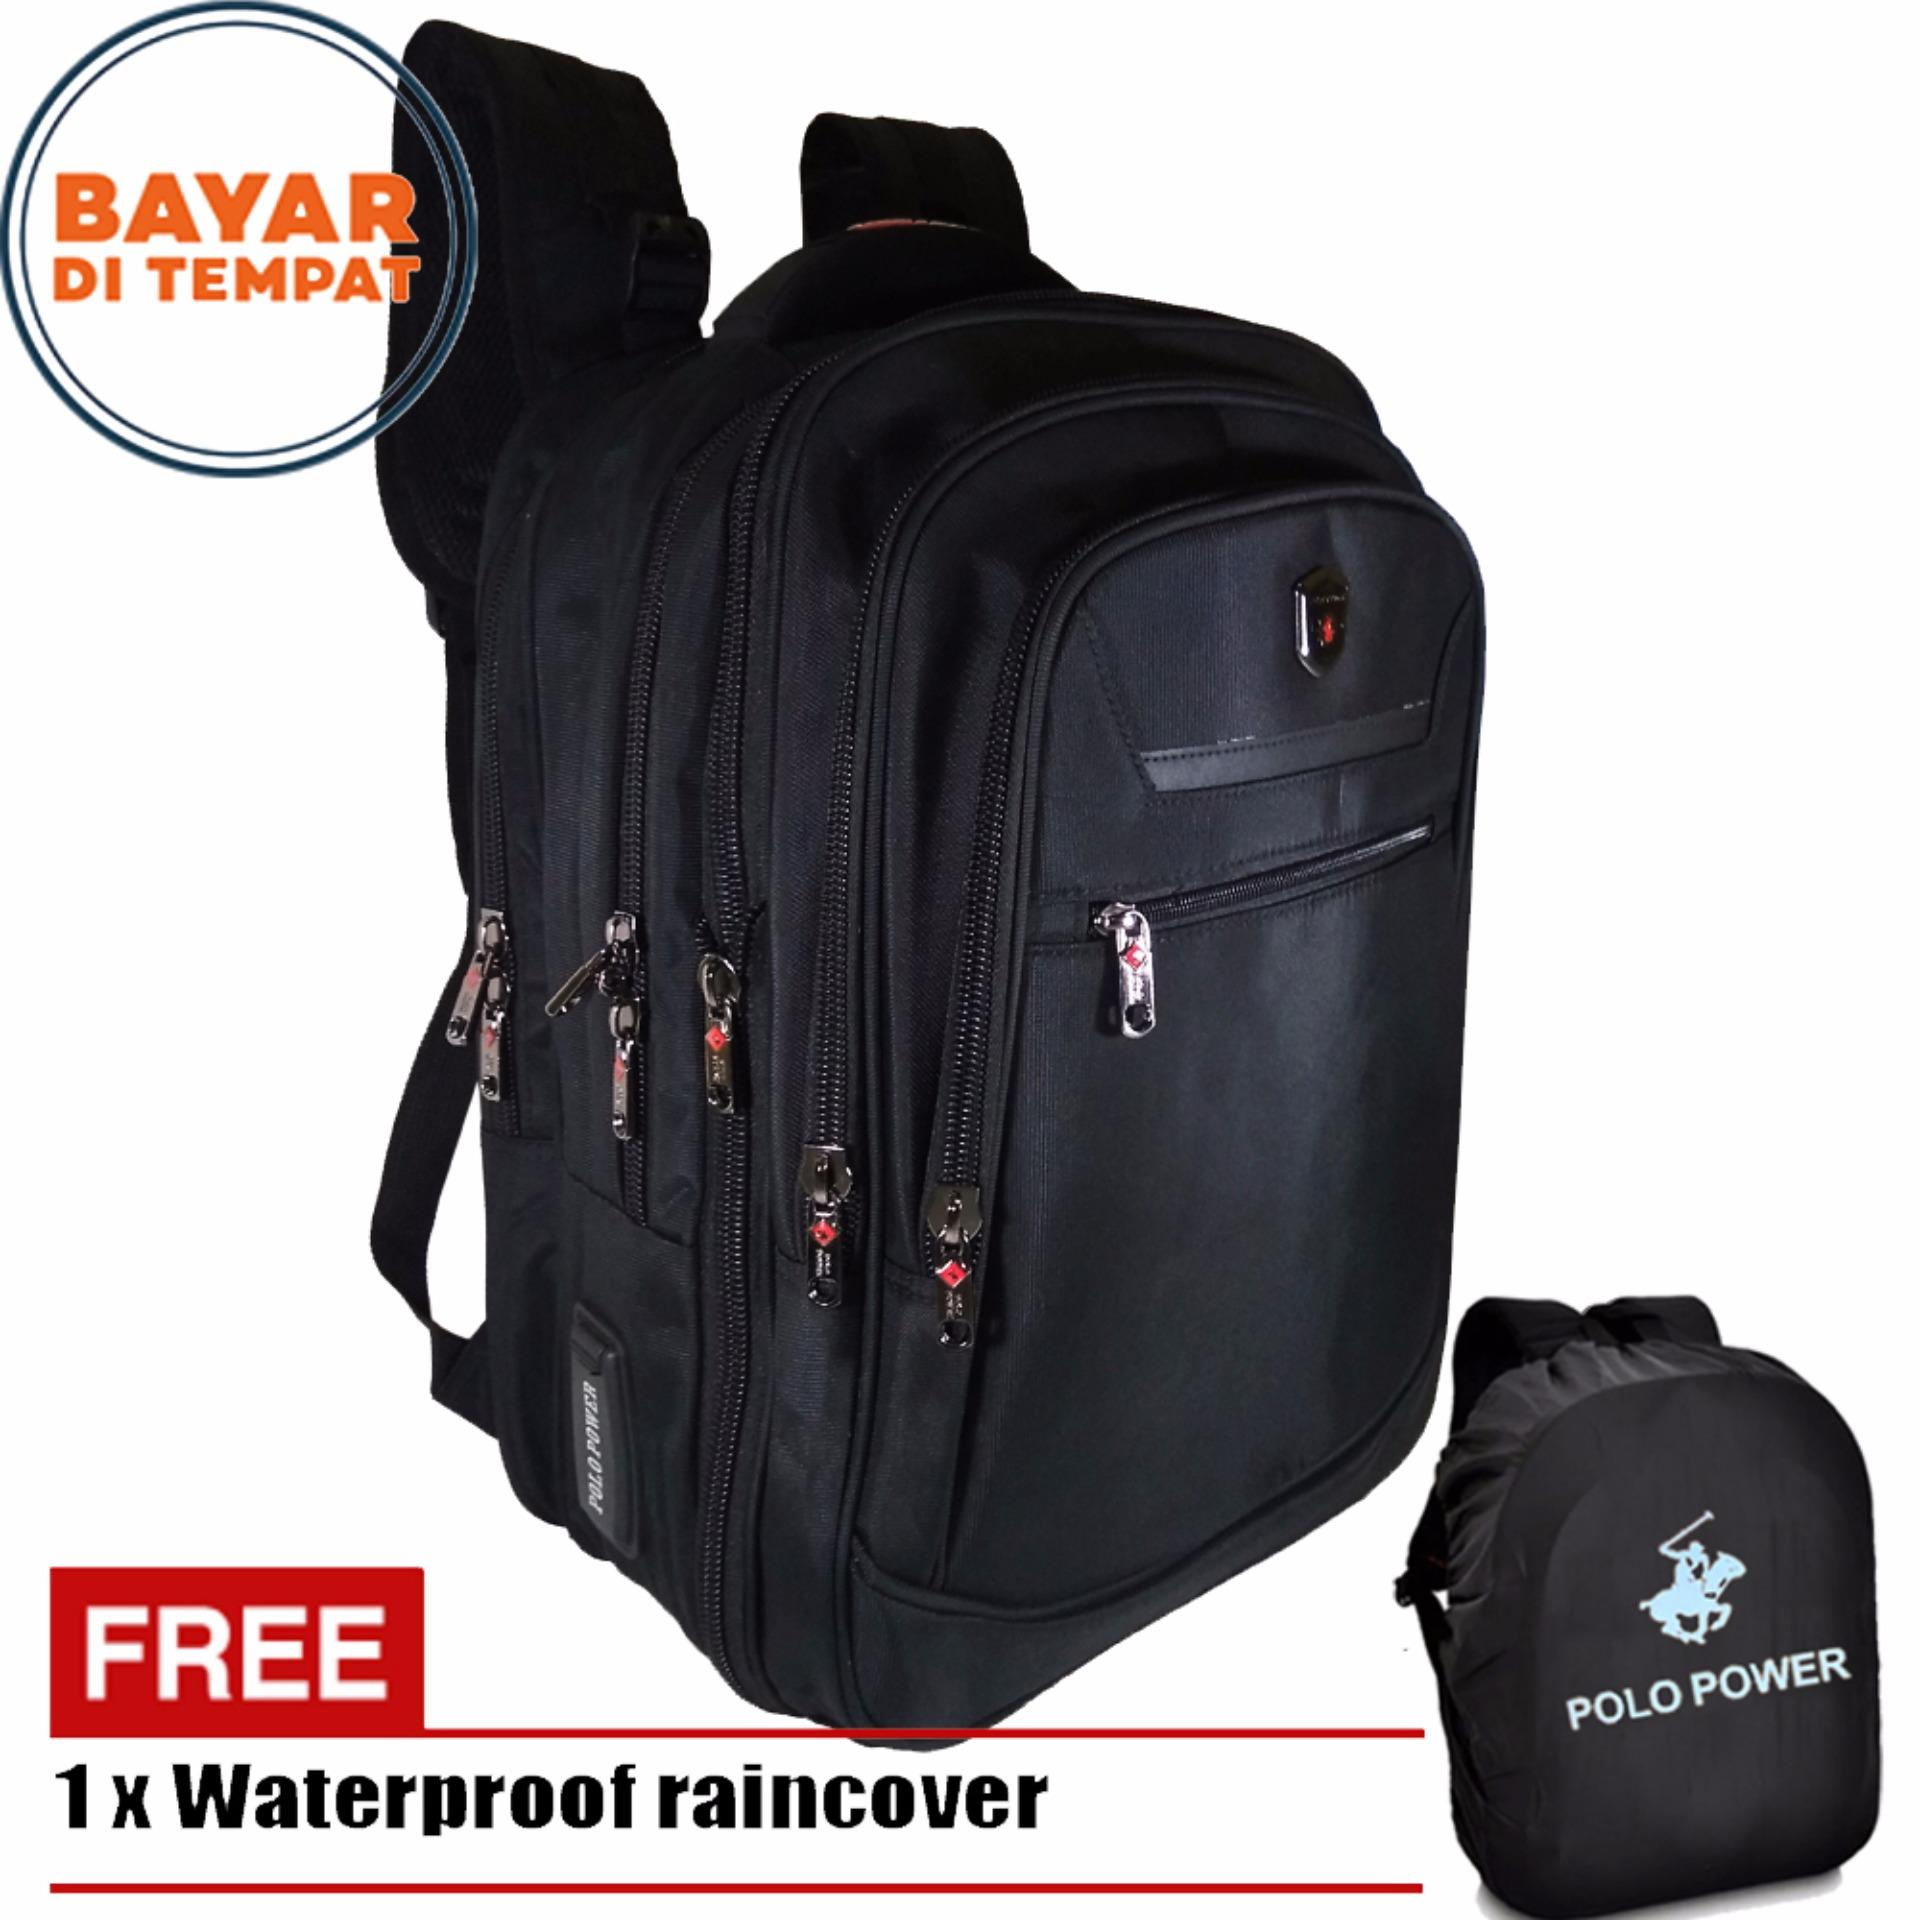 Jual Polo Power Tas Ransel Pria 18 Inchi Expandable 185003 Highest Spec Polo Backpack Import Original Black Raincover Lengkap